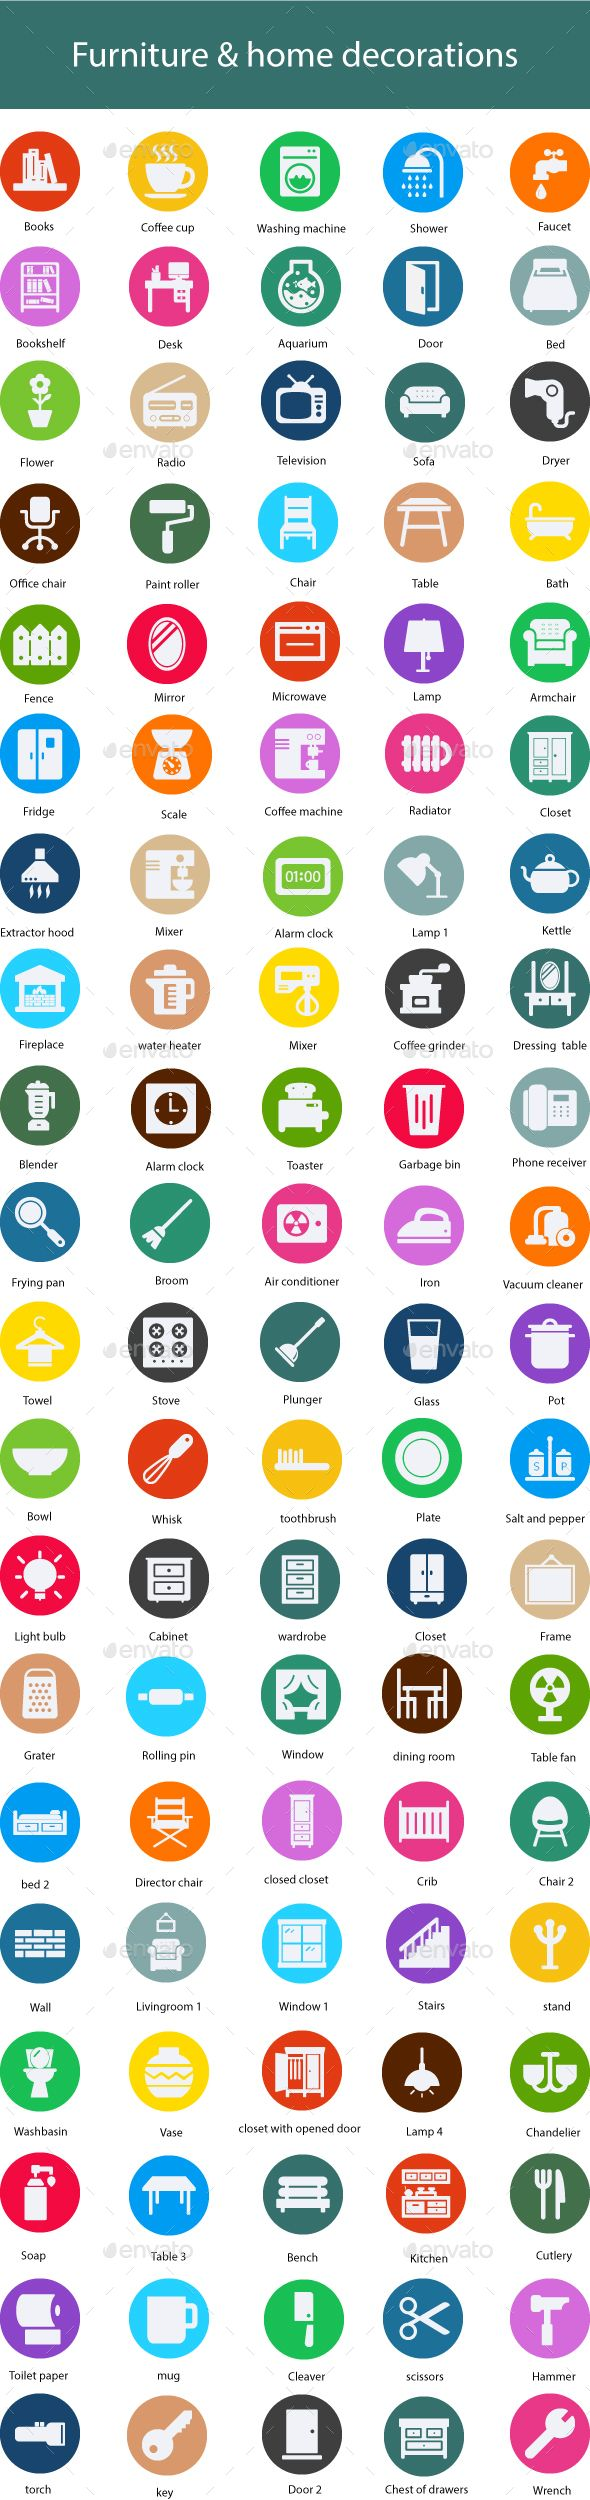 #Furniture & home decorations Flat Glyph Icons - #Icons